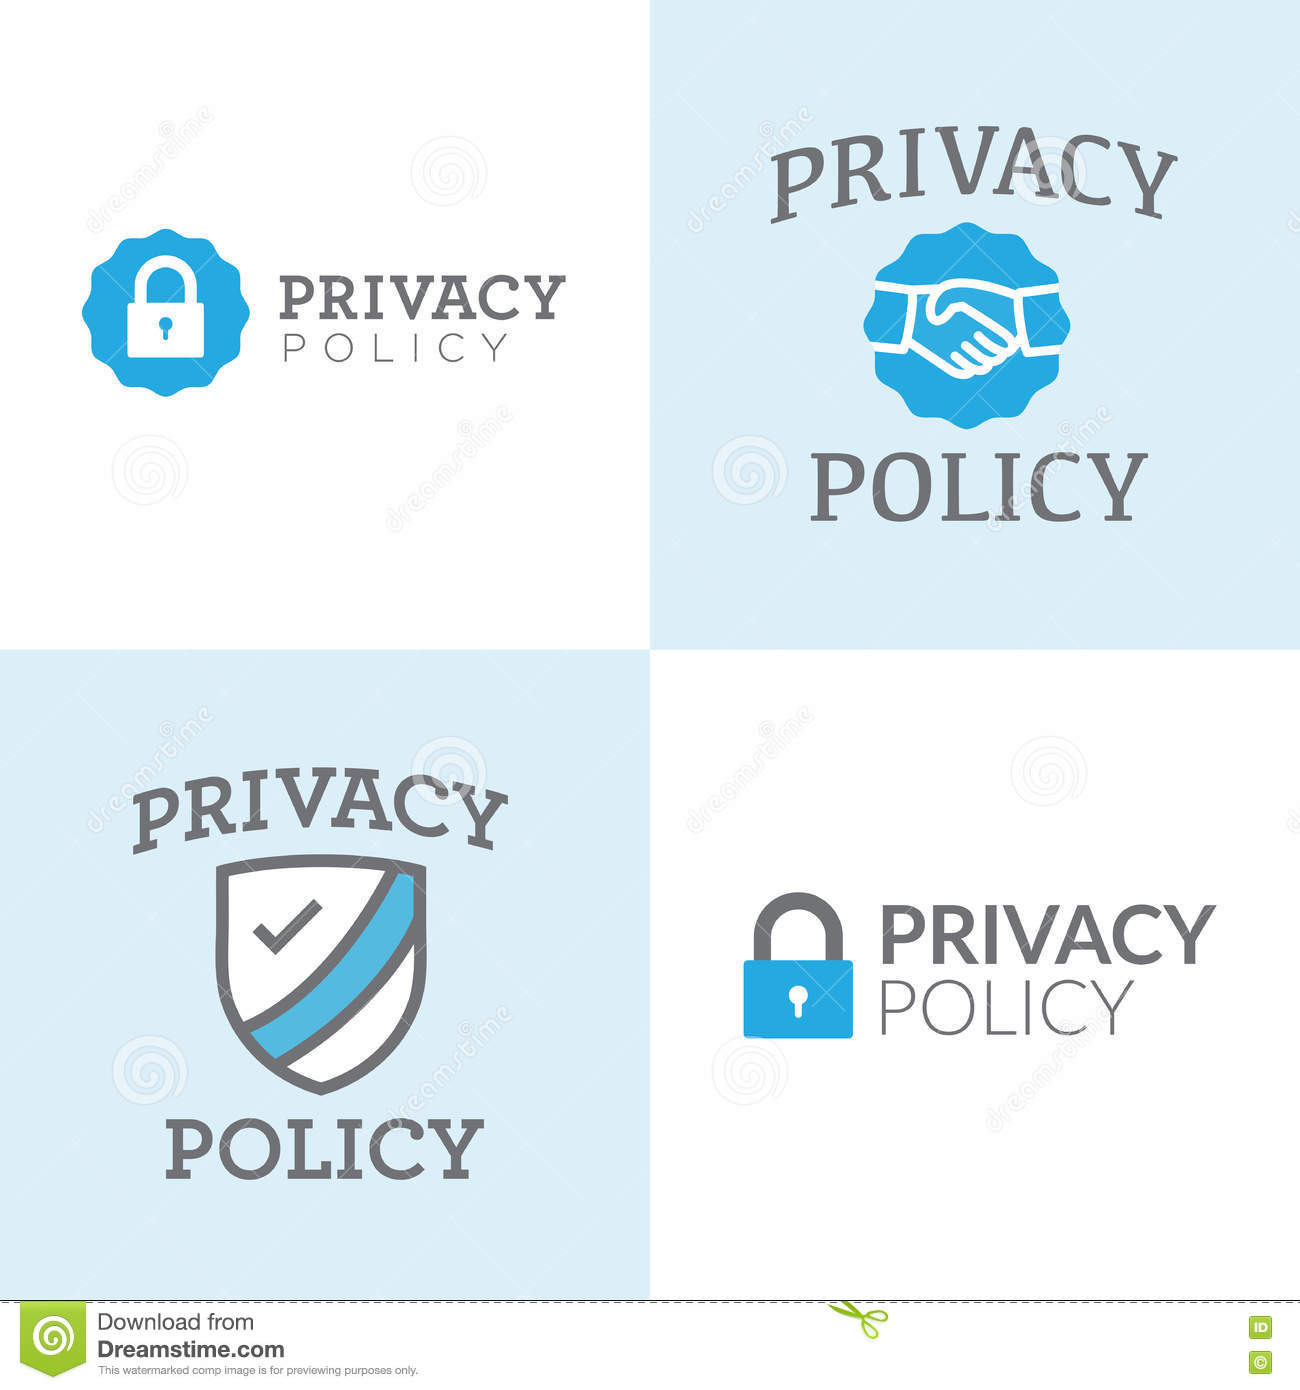 Privacy Policy: Privacy Policy Sign Shows Company Data Protection Royalty